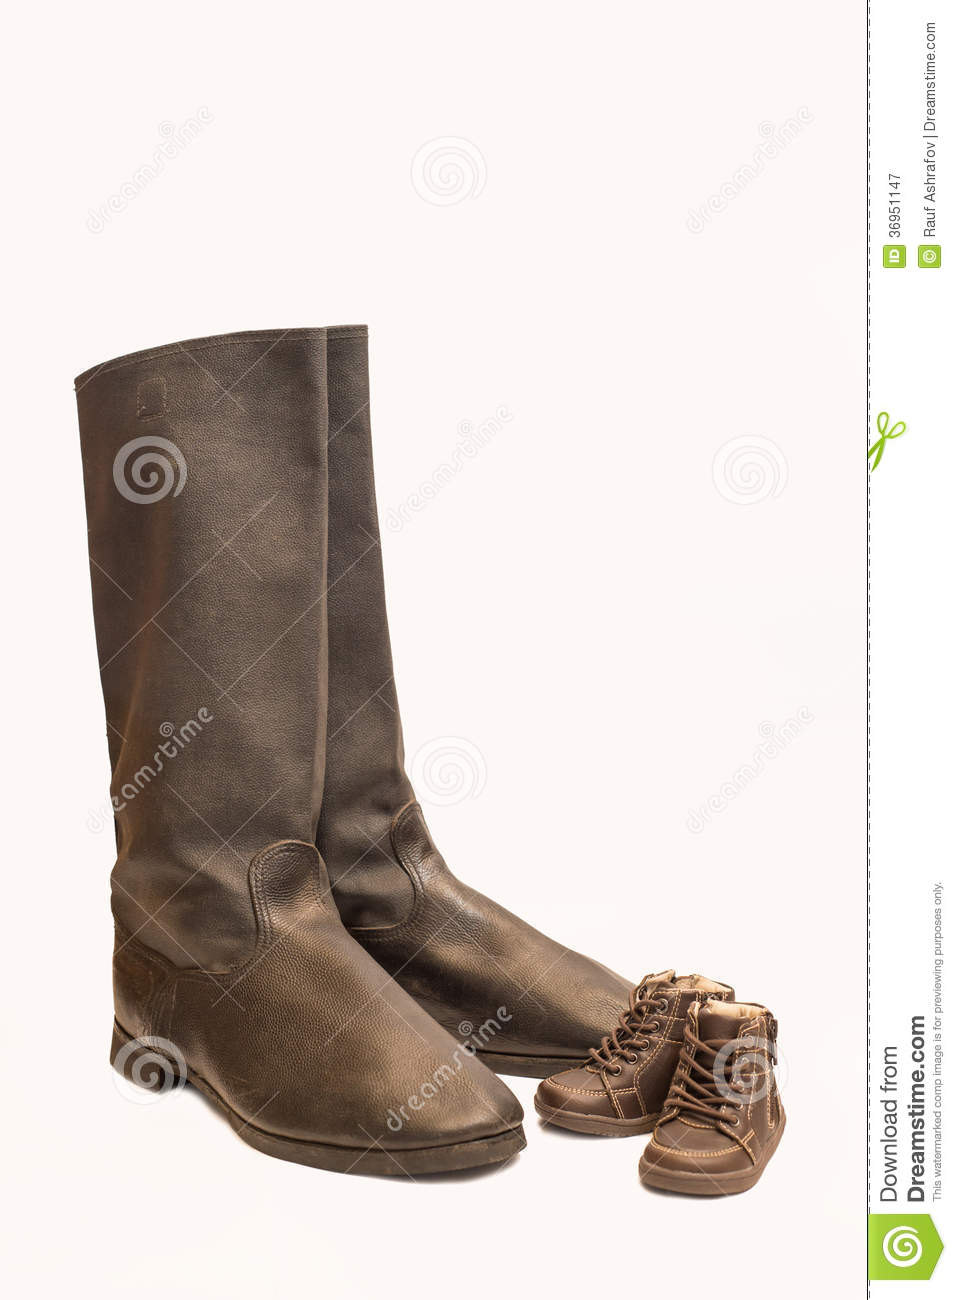 large boots and small shoes royalty free stock photography